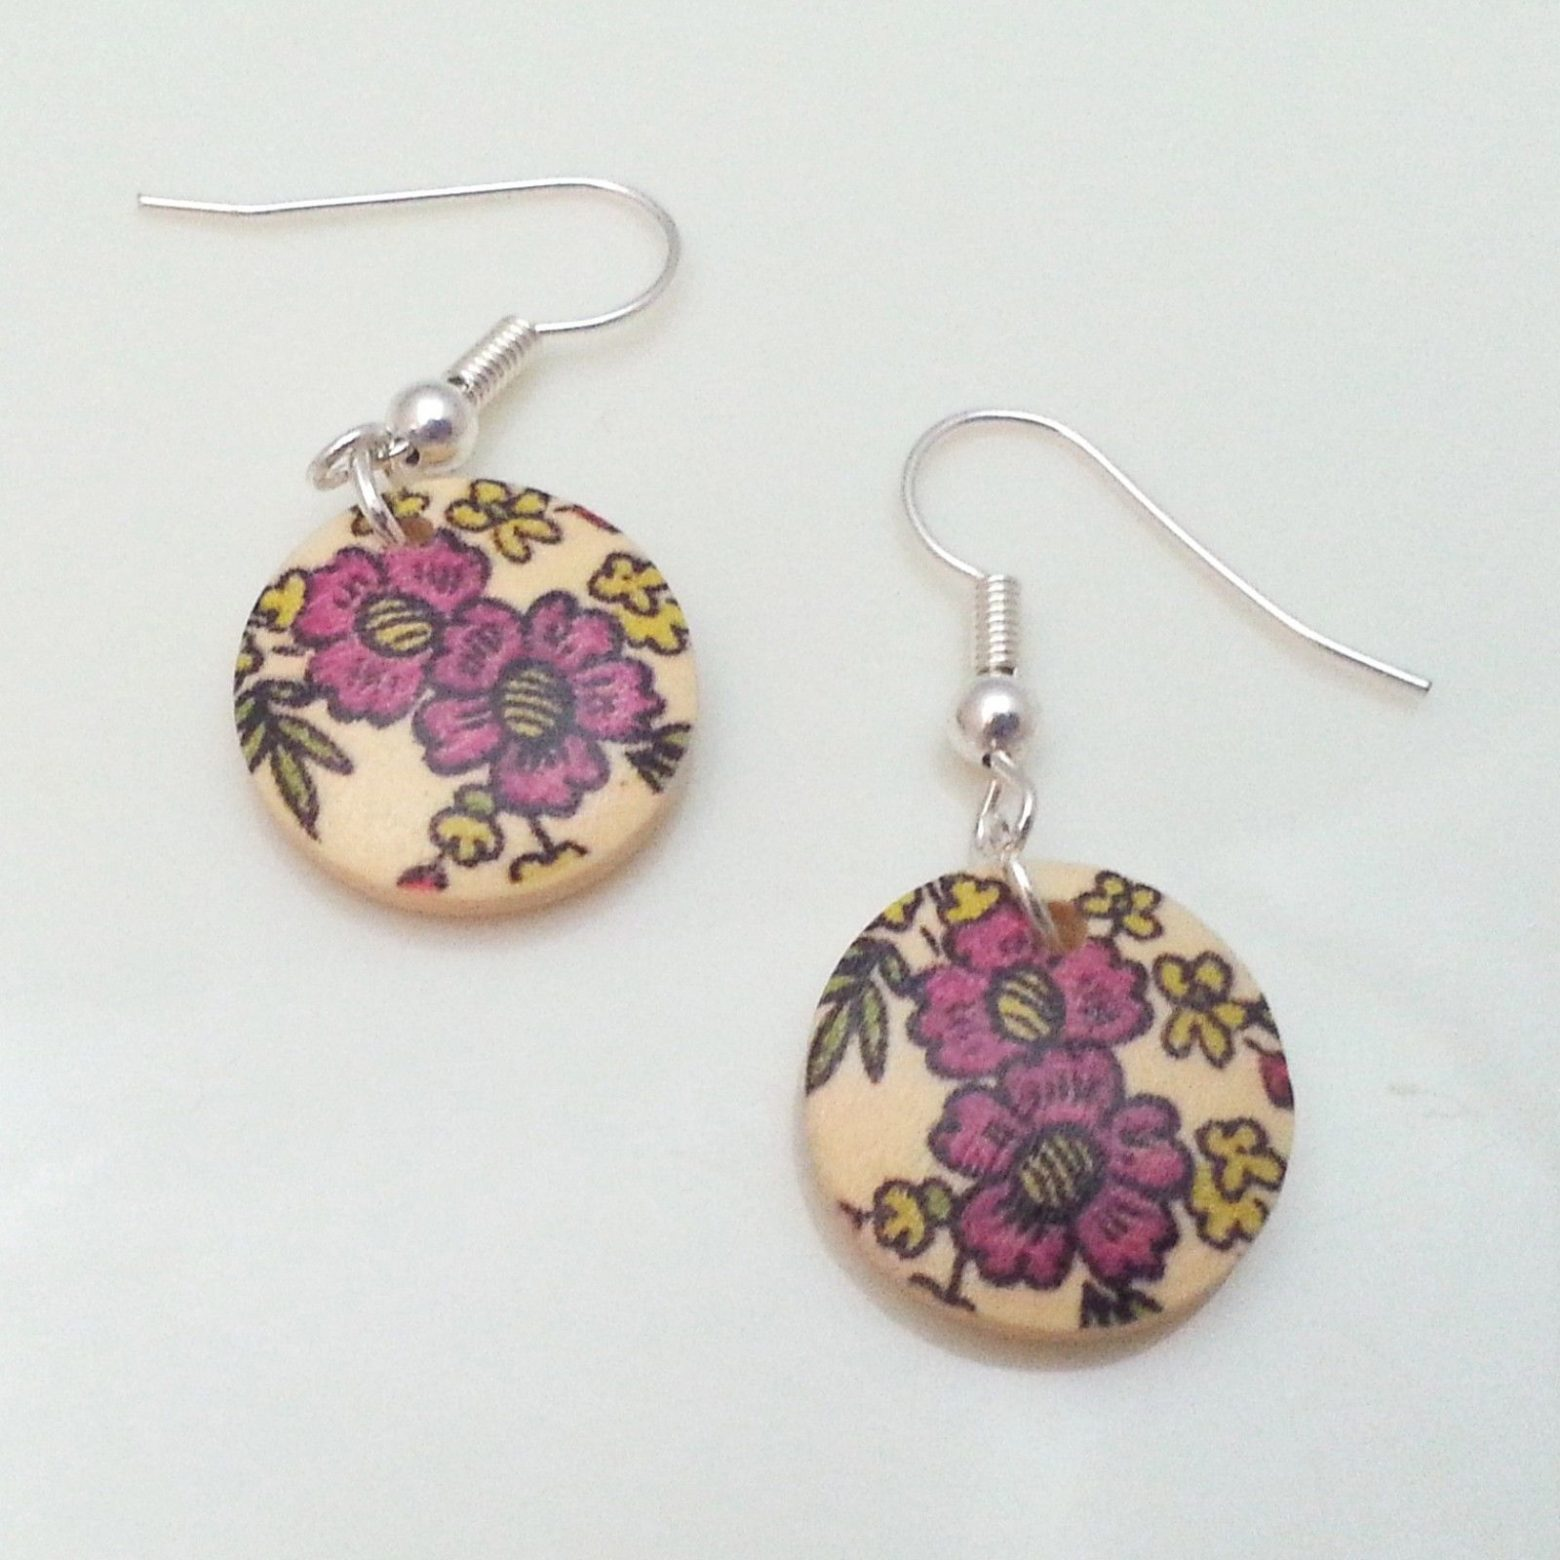 Light-Wooden-Jewellery-Earrings-Disc-Round-Wood-Pink-Flowers-Leaves-Womens-New-161361899276